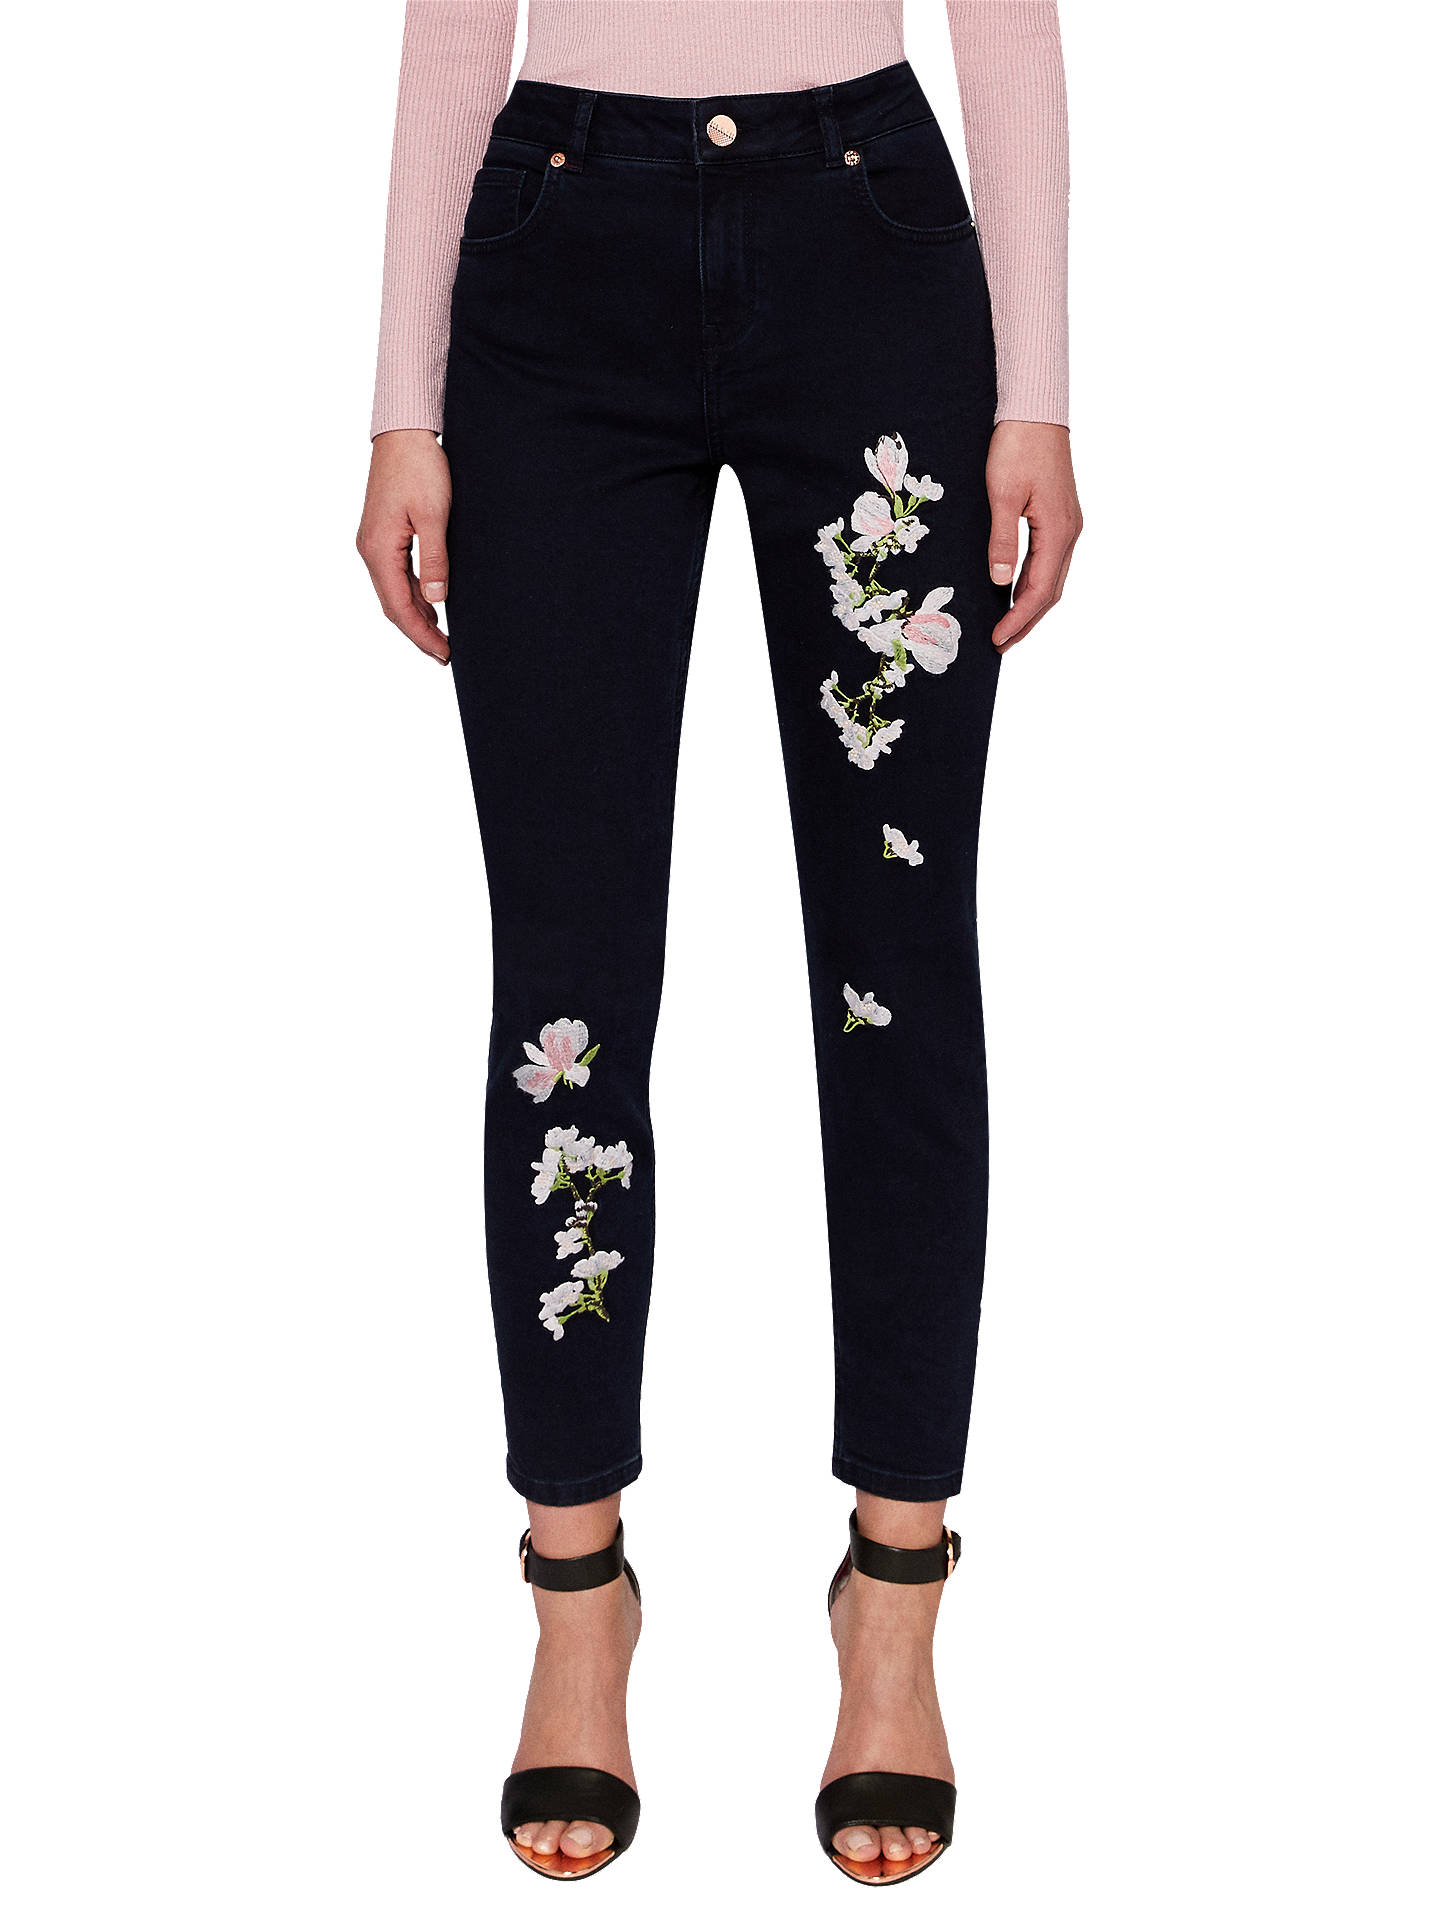 8d958b7e6 Buy Ted Baker Willahe Embroidered Jeans